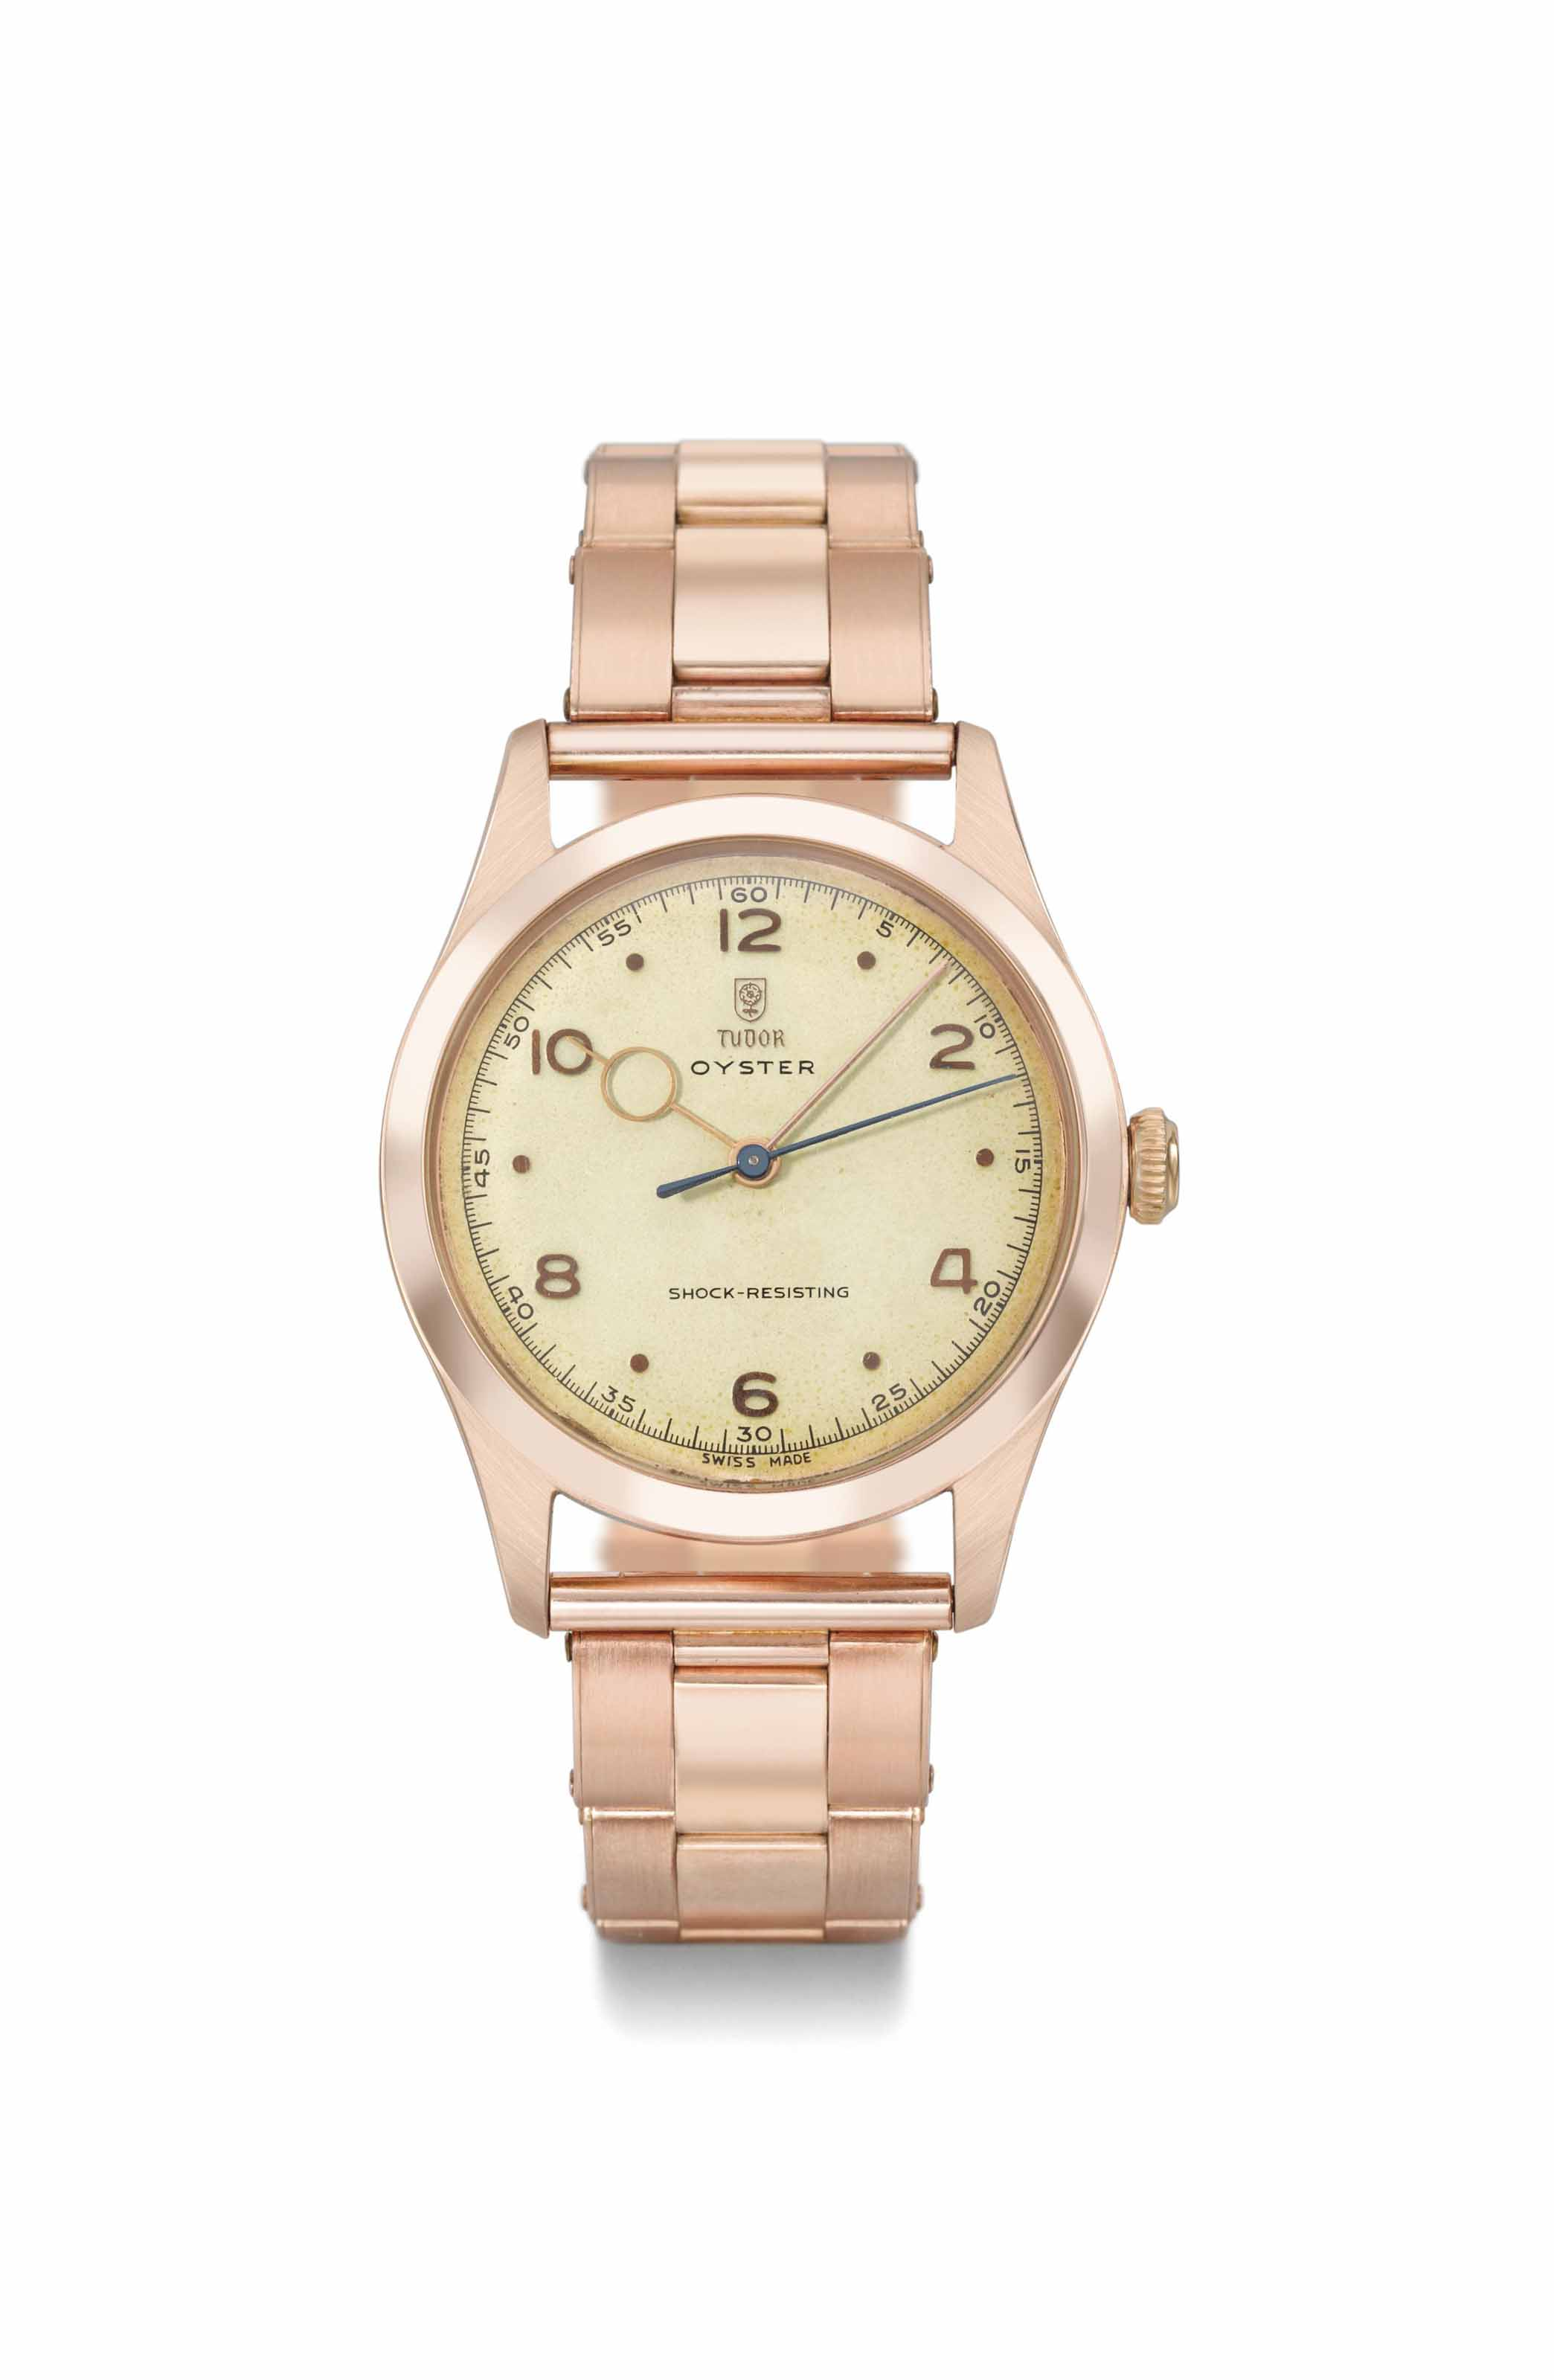 Tudor. A very rare and attractive 14K pink gold tonneau-shaped wristwatch with bracelet